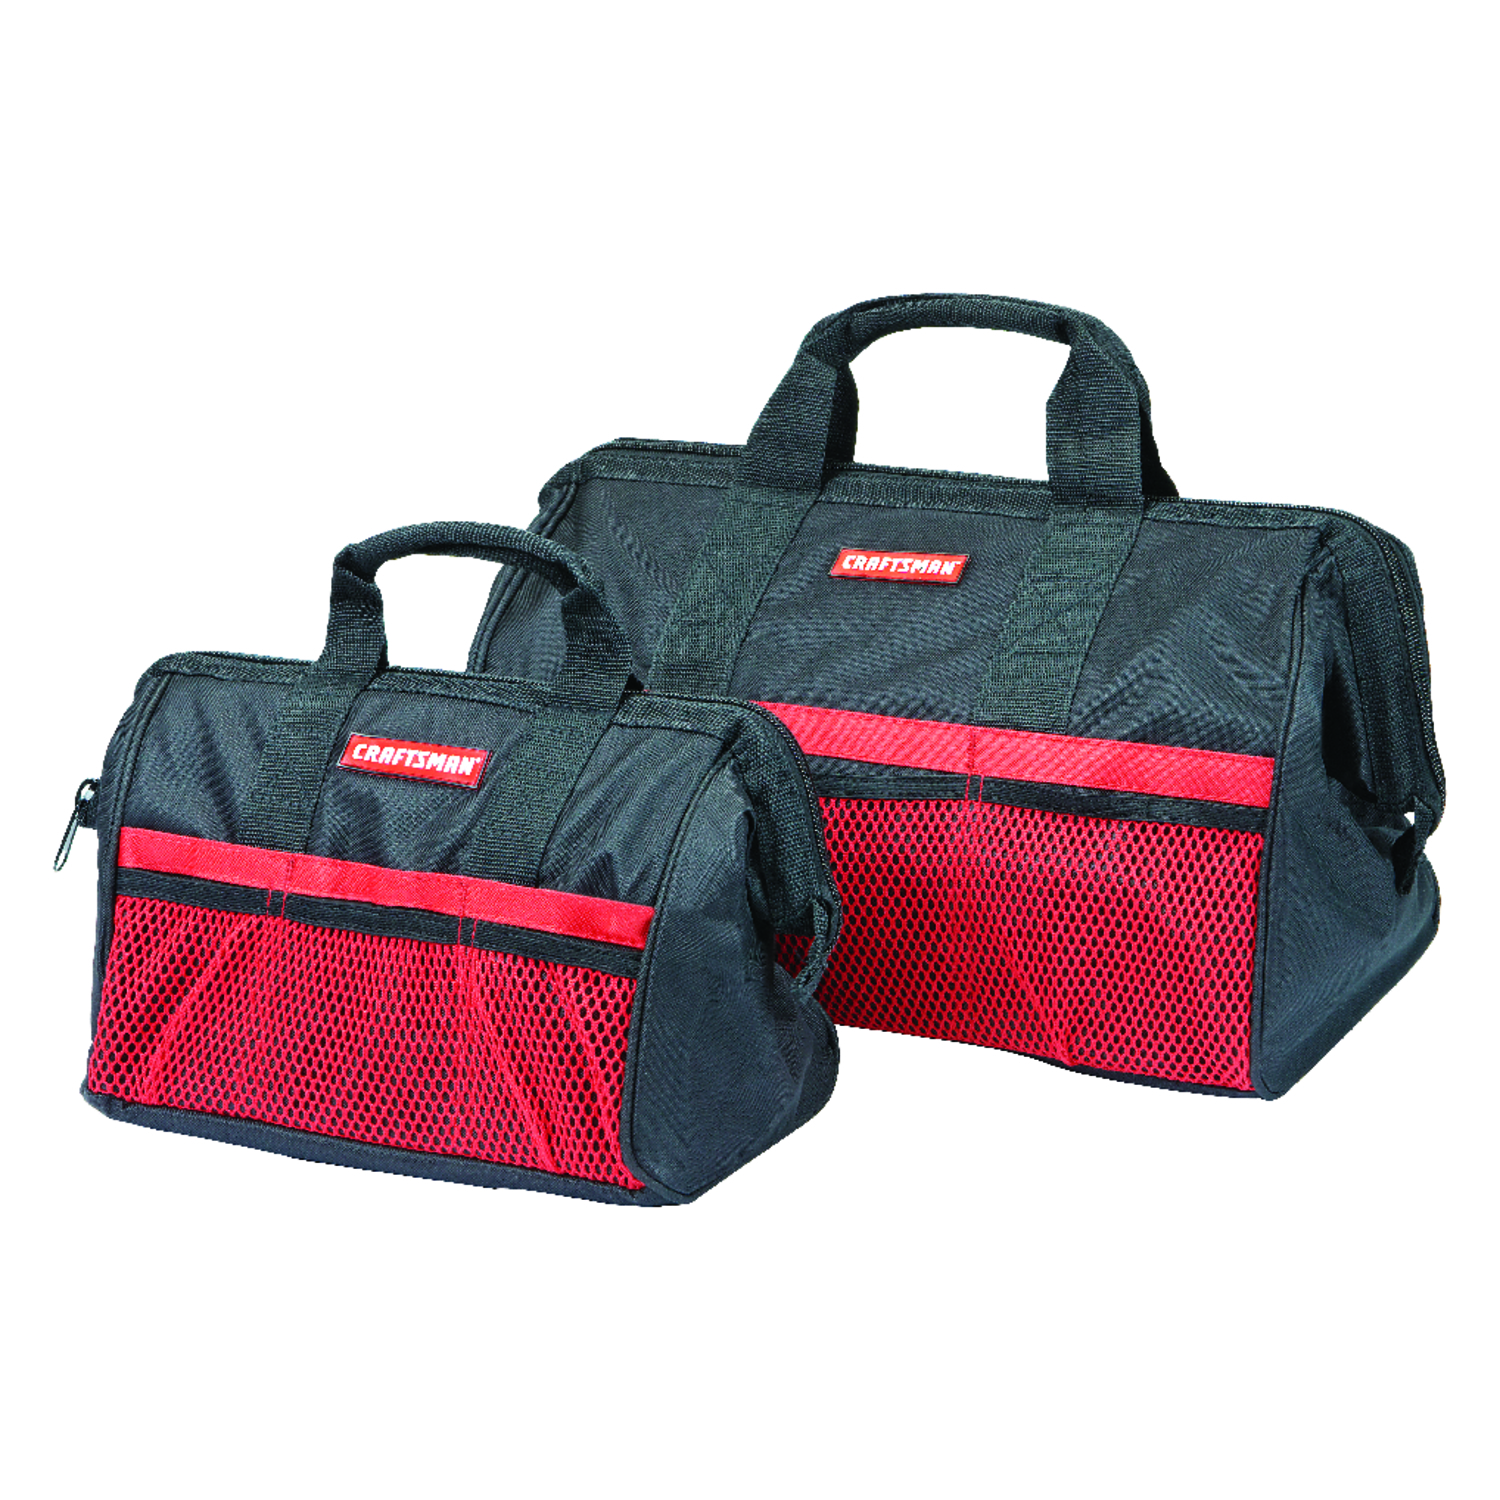 Craftsman 18 In W X 13 H Ballistic Nylon Tool Bag